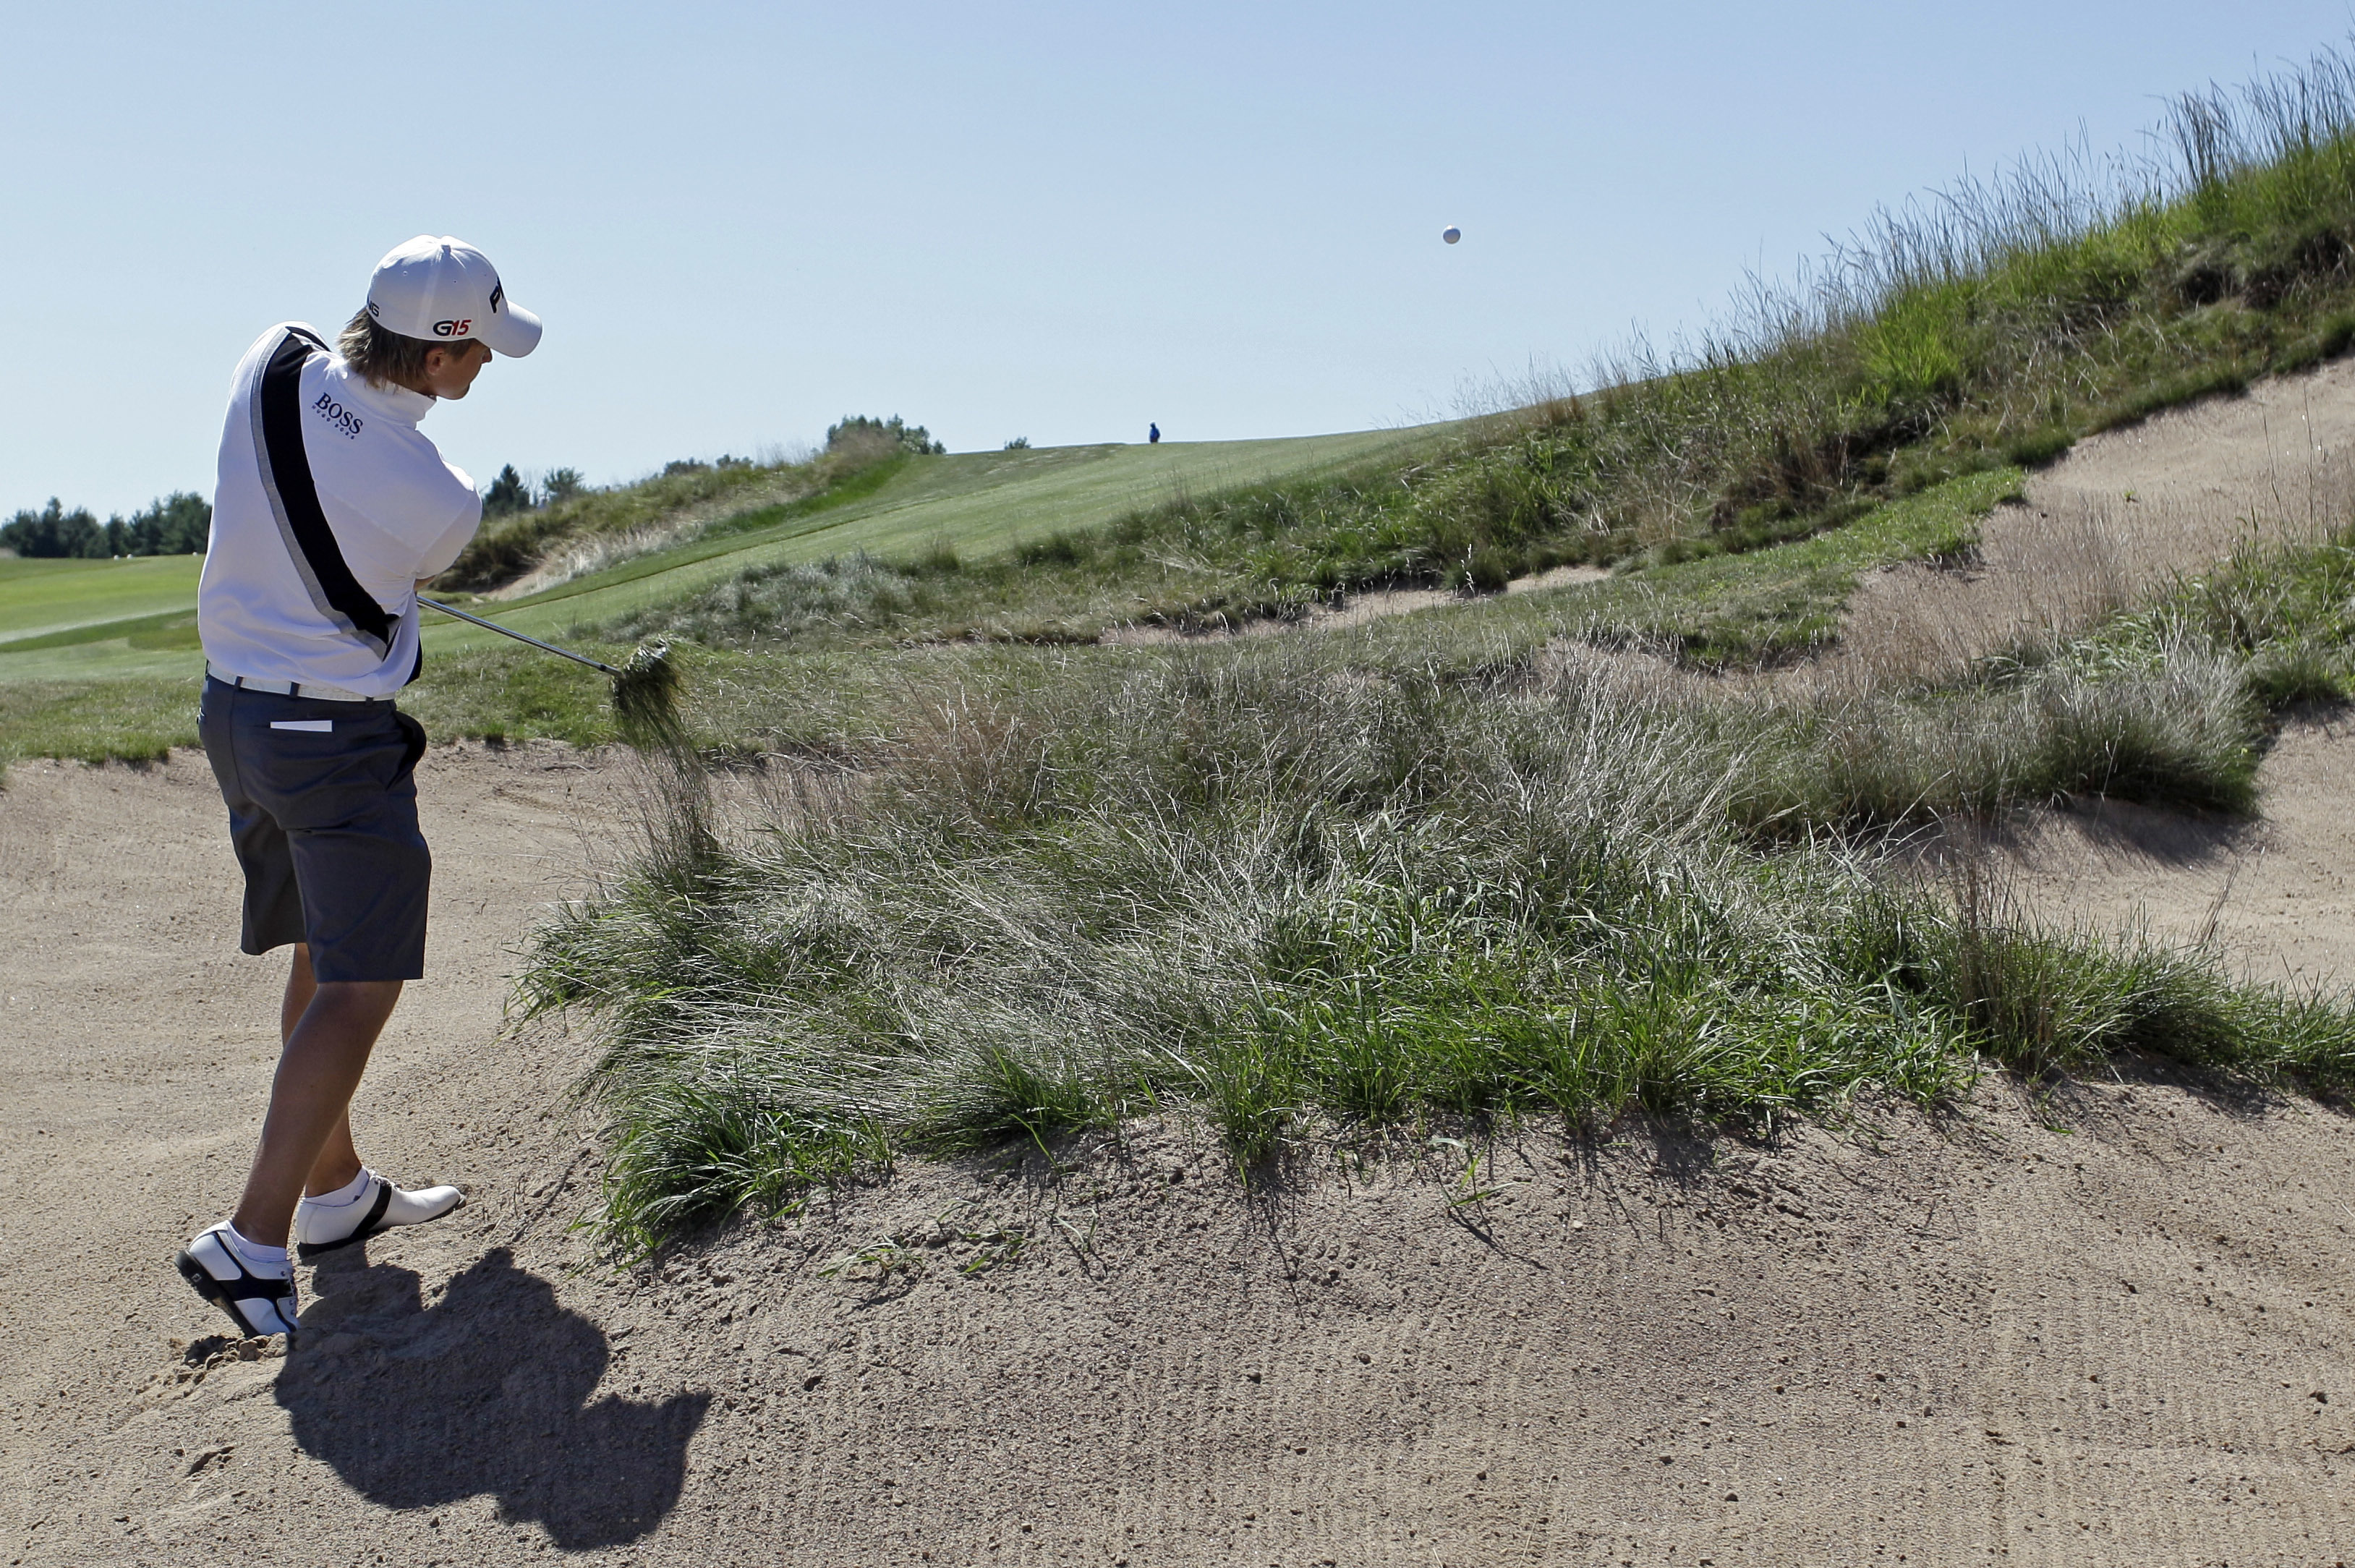 FILE - In this Aug. 25, 2011 file photo, Tom Lewis, of England, hits out of some rough in a trap on the first hole during the second round of match play at the U.S. Amateur golf tournament at Erin Hills Golf Course in Erin, Wis. The man who first imagined